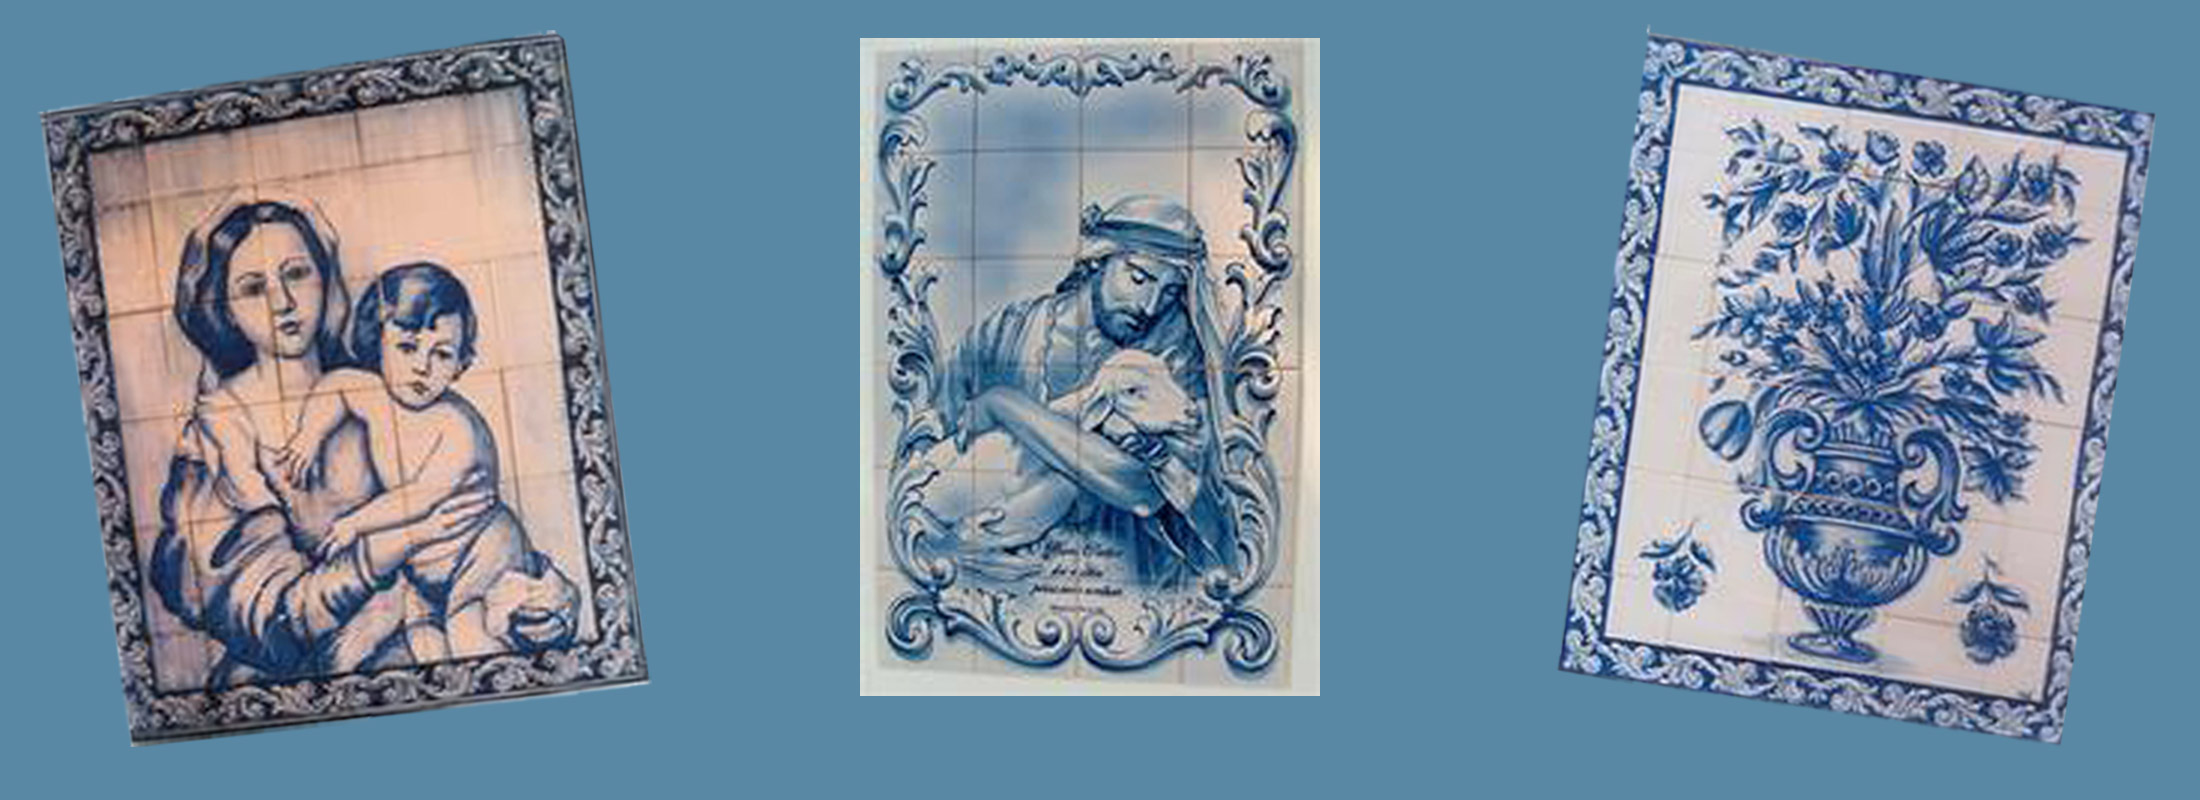 Portuguese Tile Art - Blue and White Azulejos